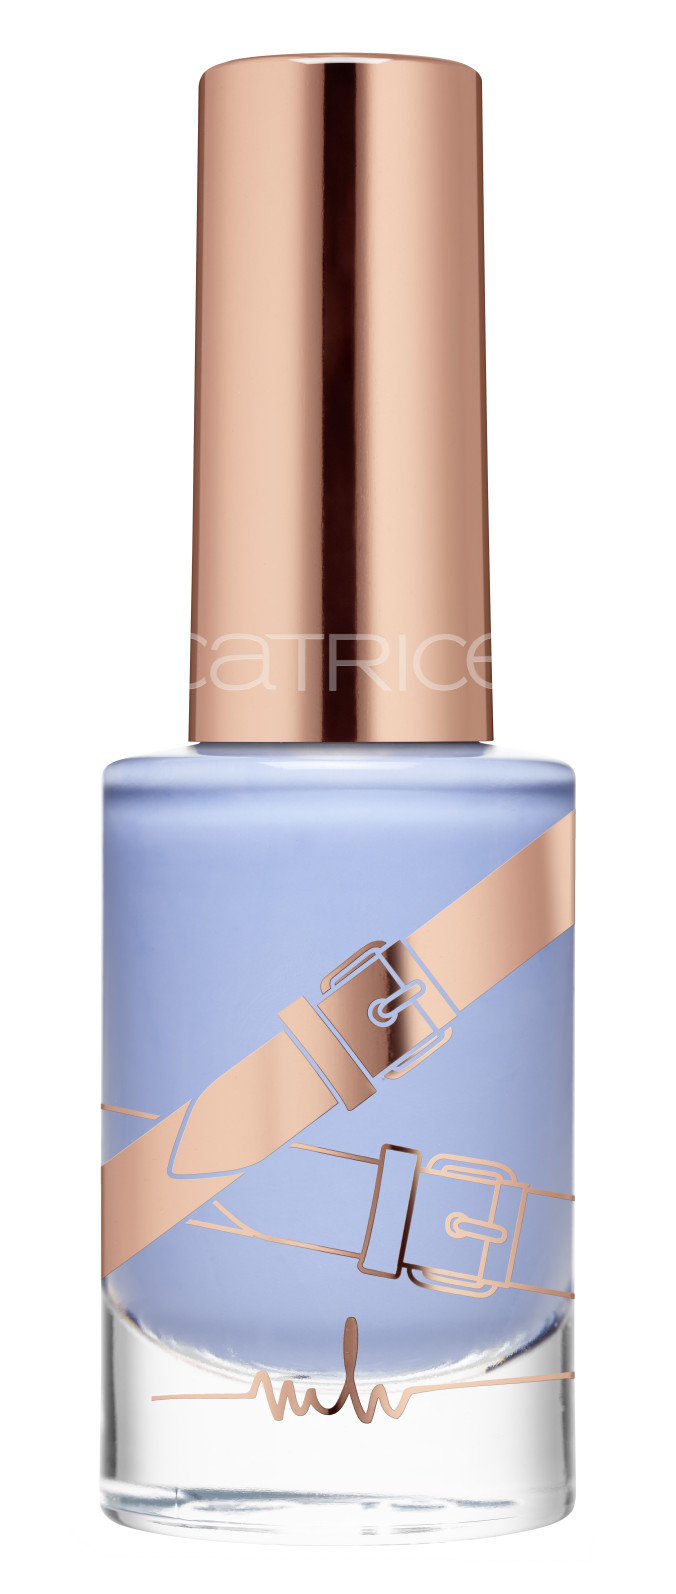 Catrice Marina Hoermanseder Nail Lacquer